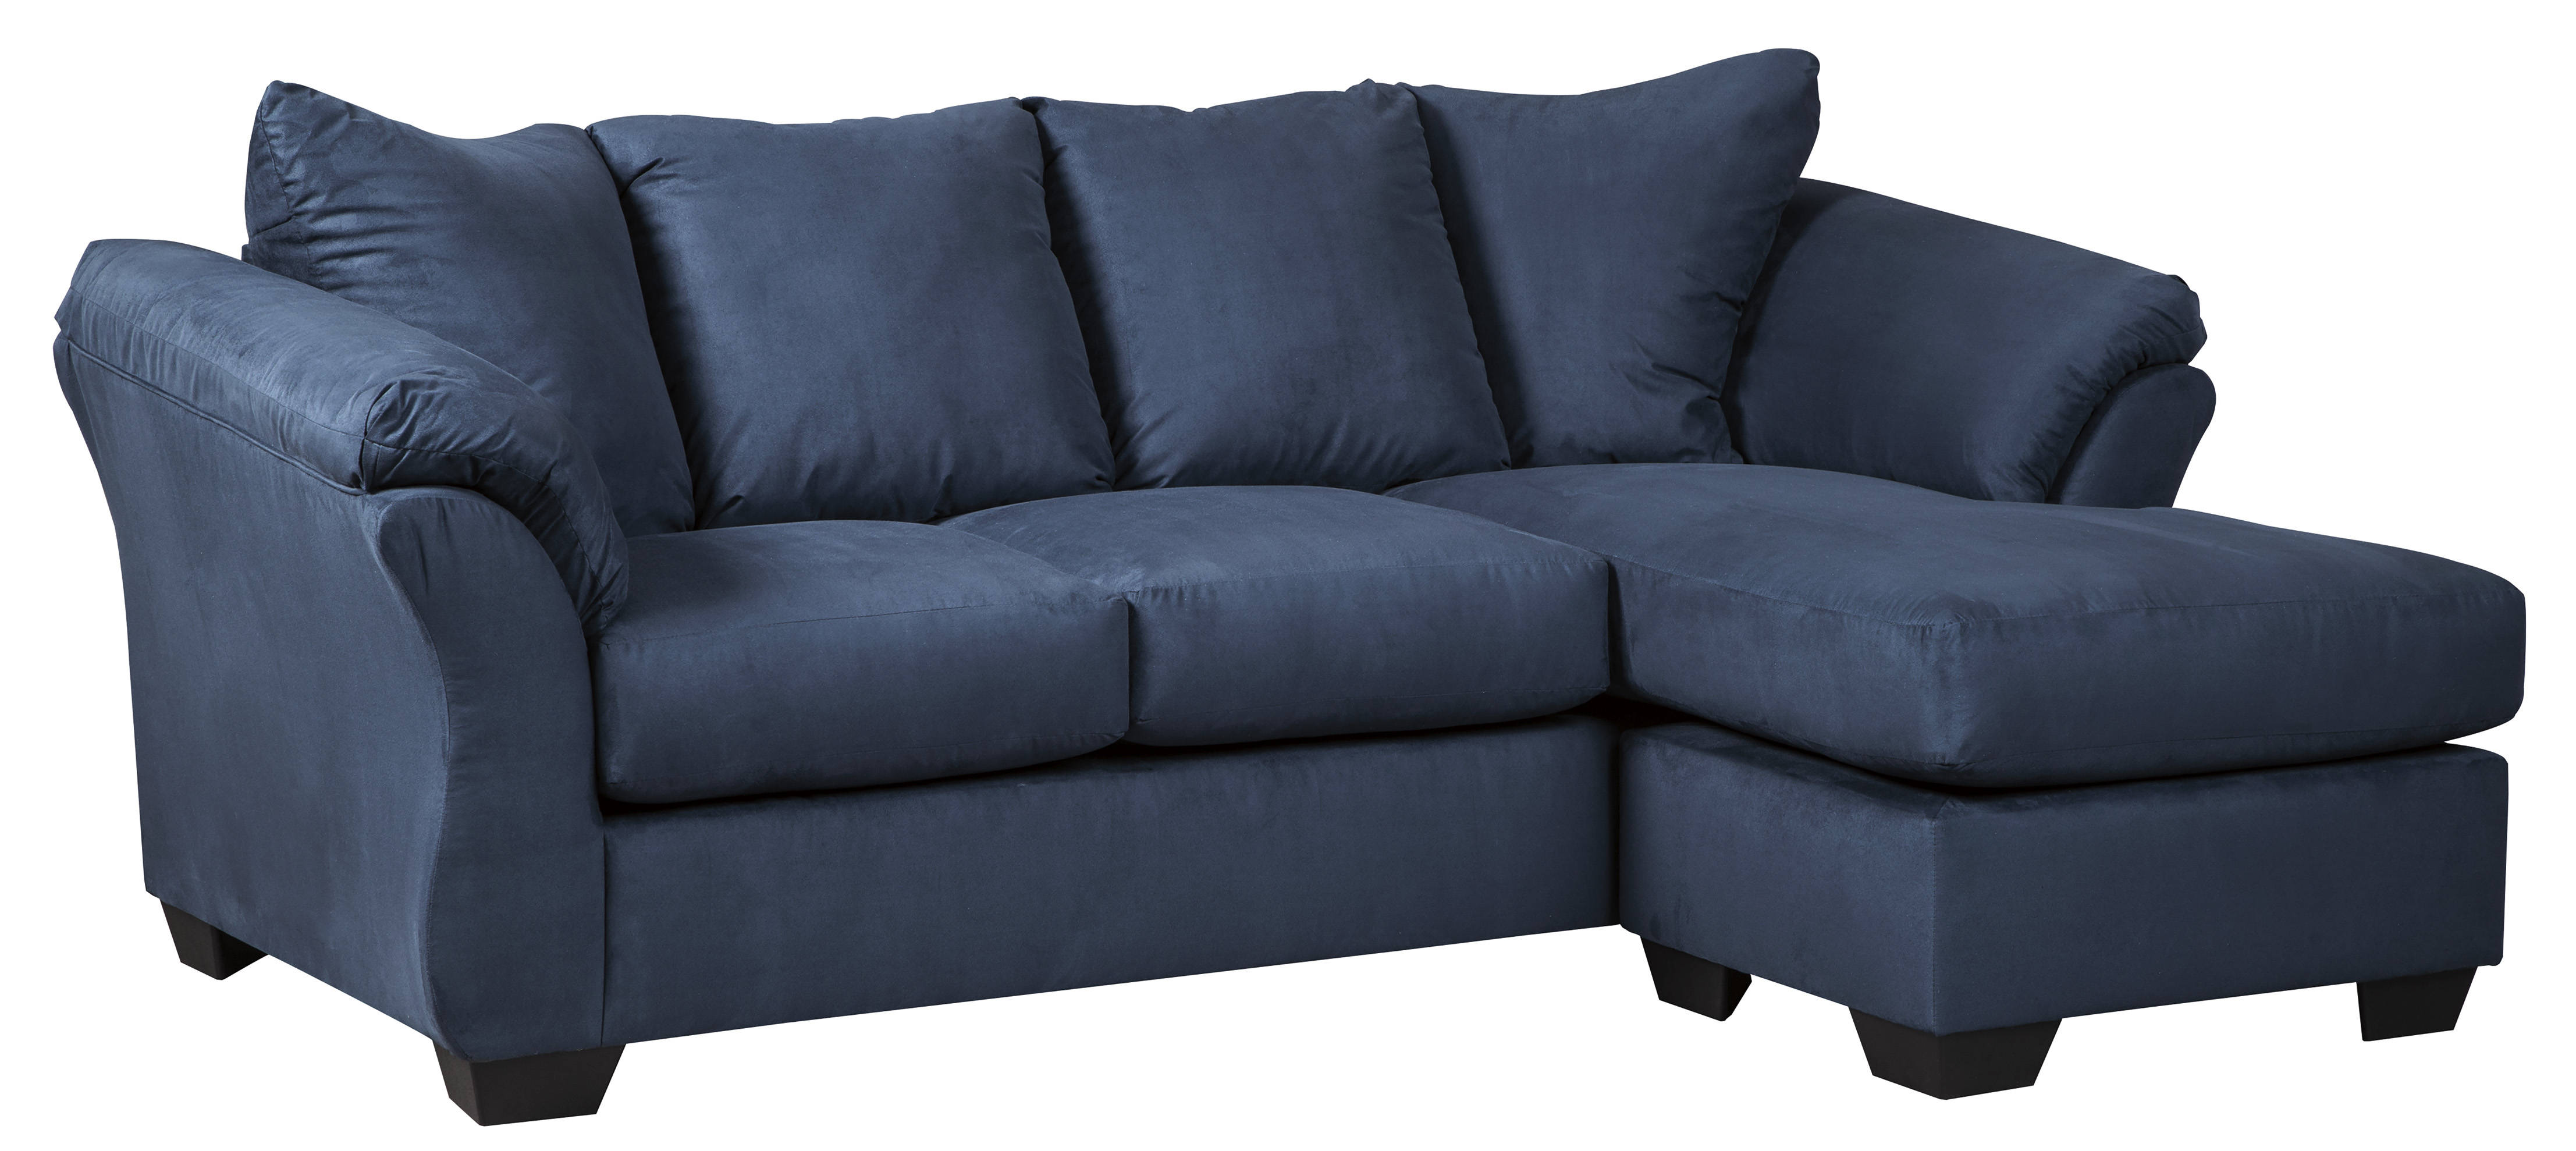 Pleasing Ashley Furniture Darcy Blue Sofa Chaise Caraccident5 Cool Chair Designs And Ideas Caraccident5Info